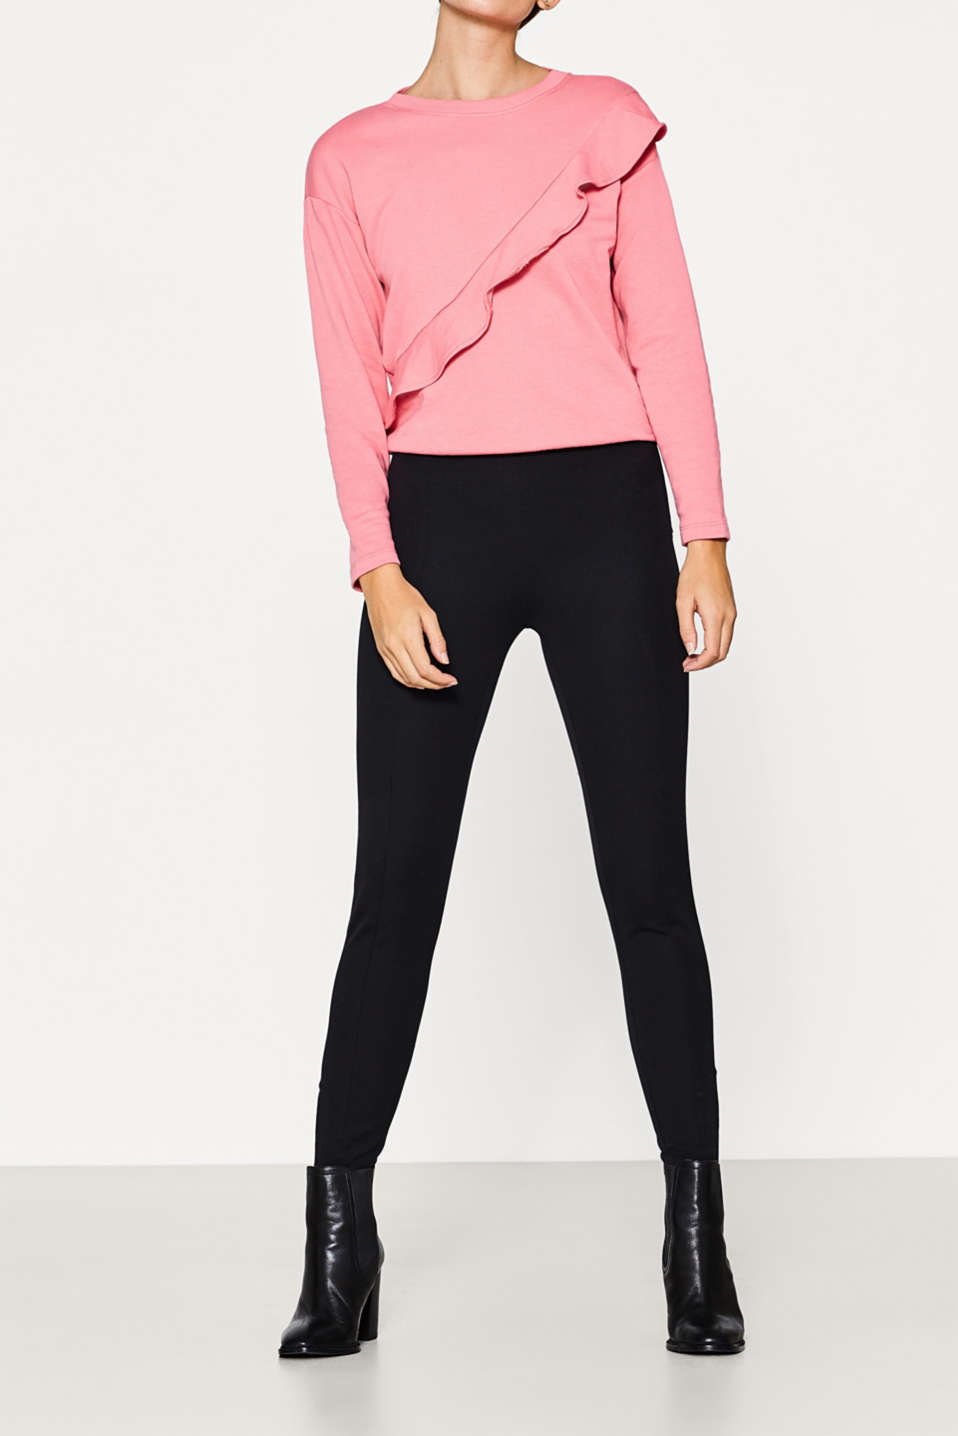 Esprit - Stretch trousers in compact blended fabric